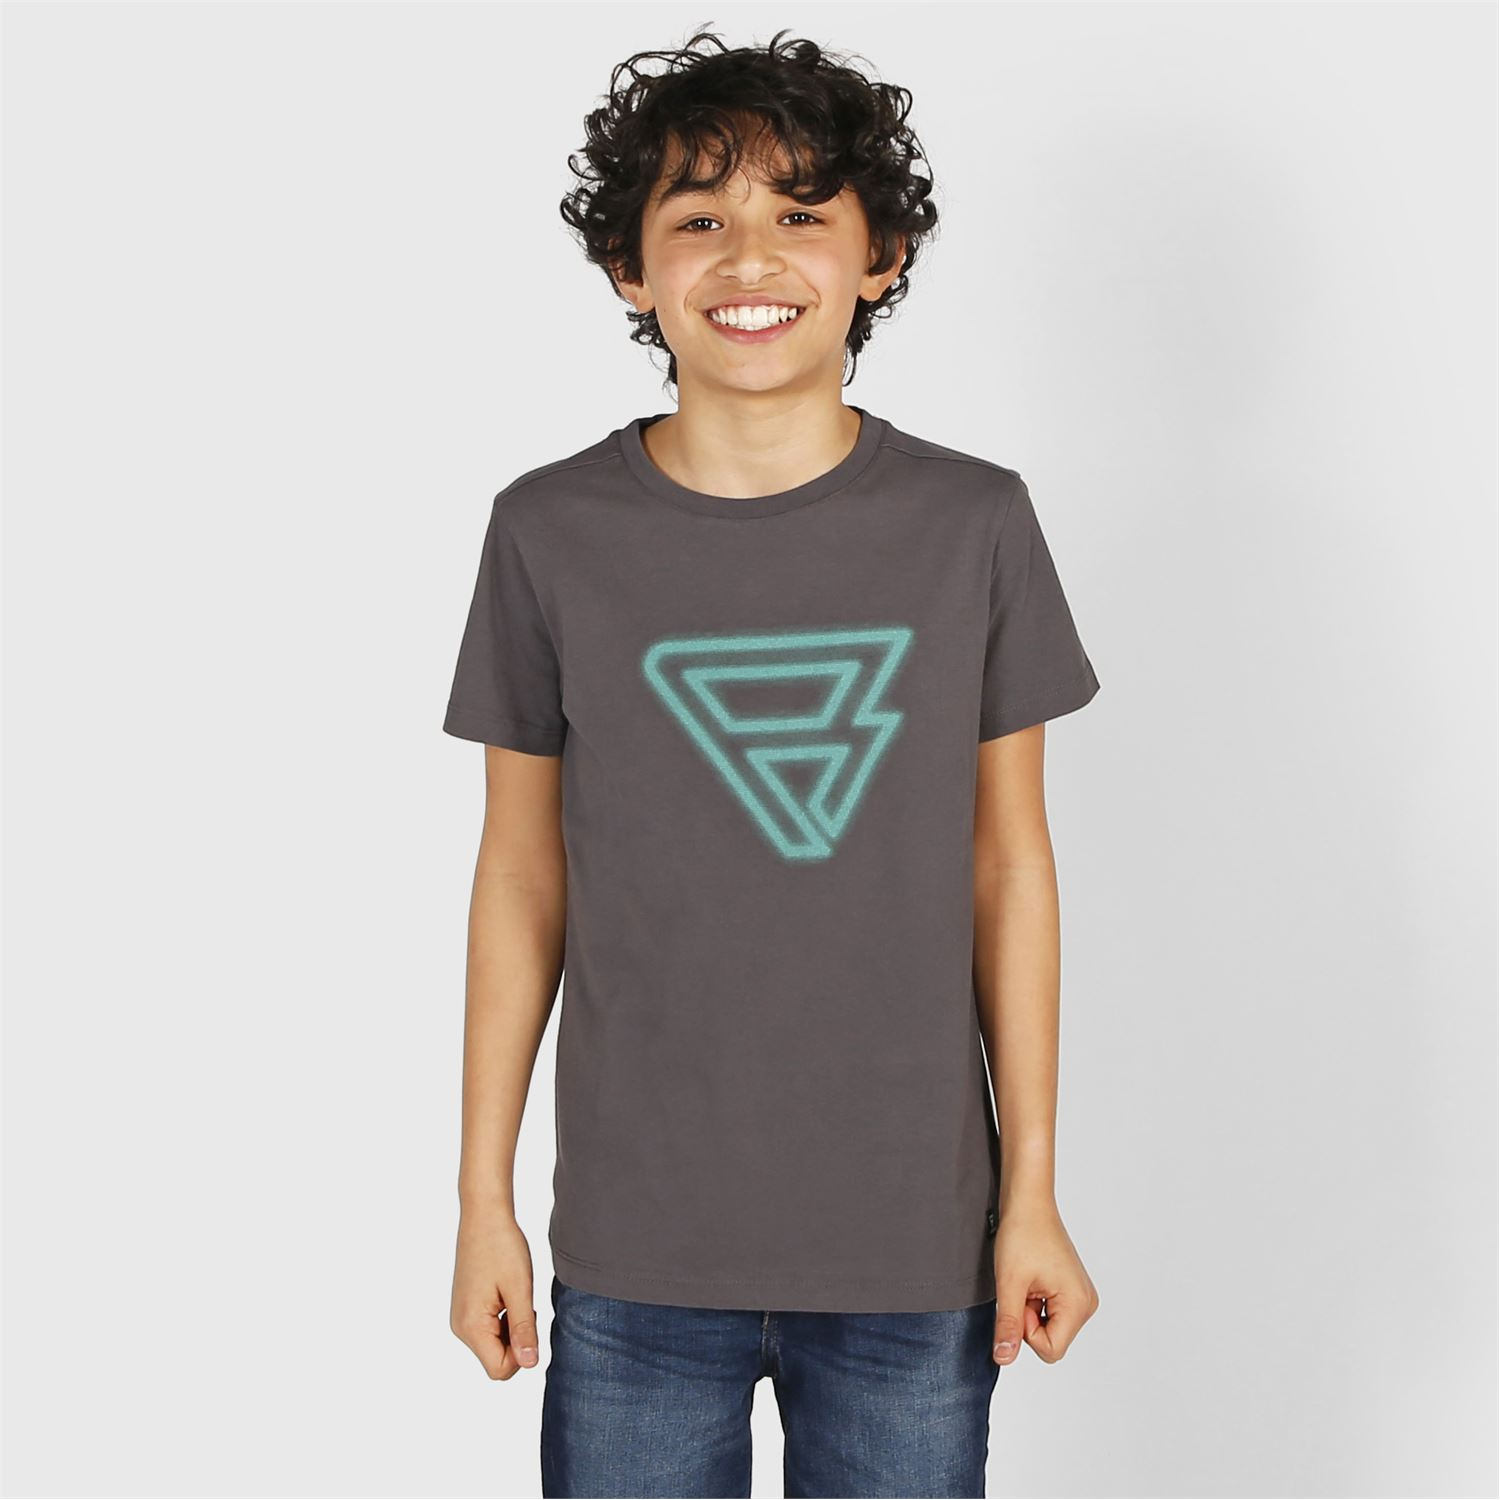 Cold Boys T-shirt